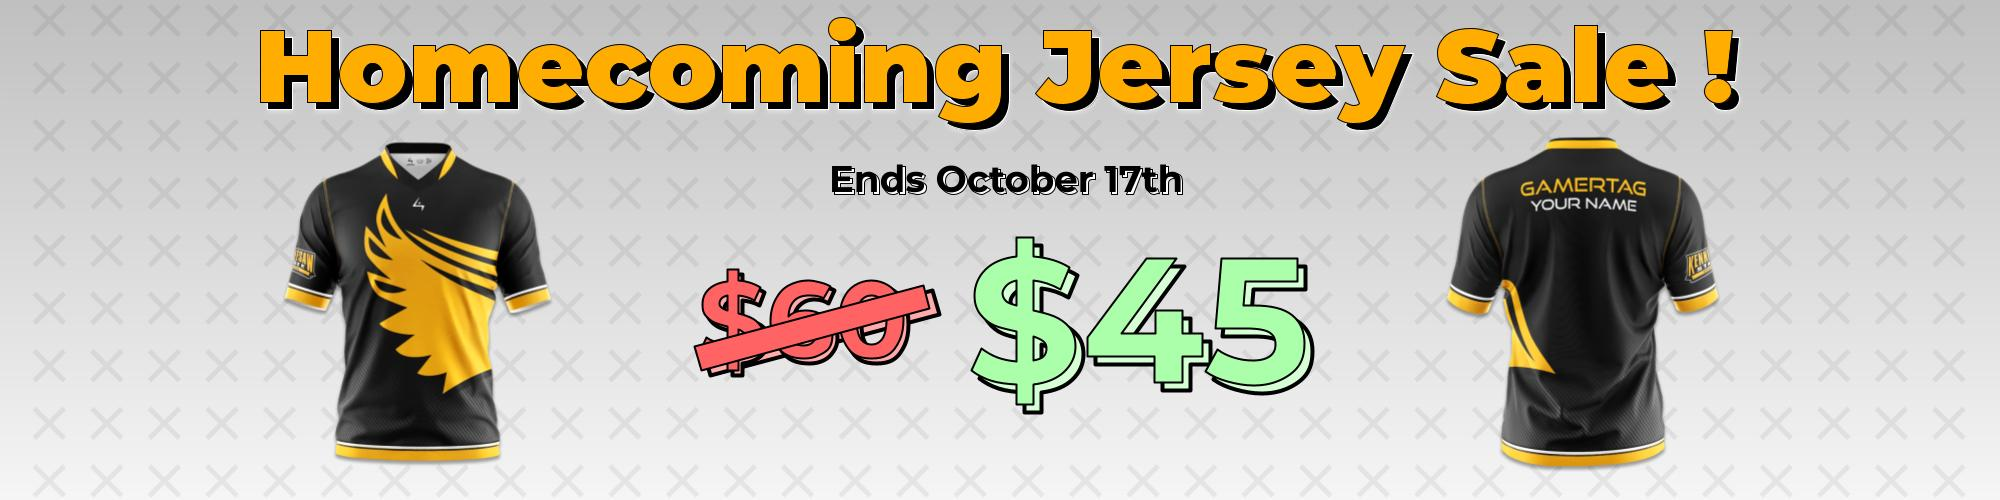 Homecoming Jersey Sale